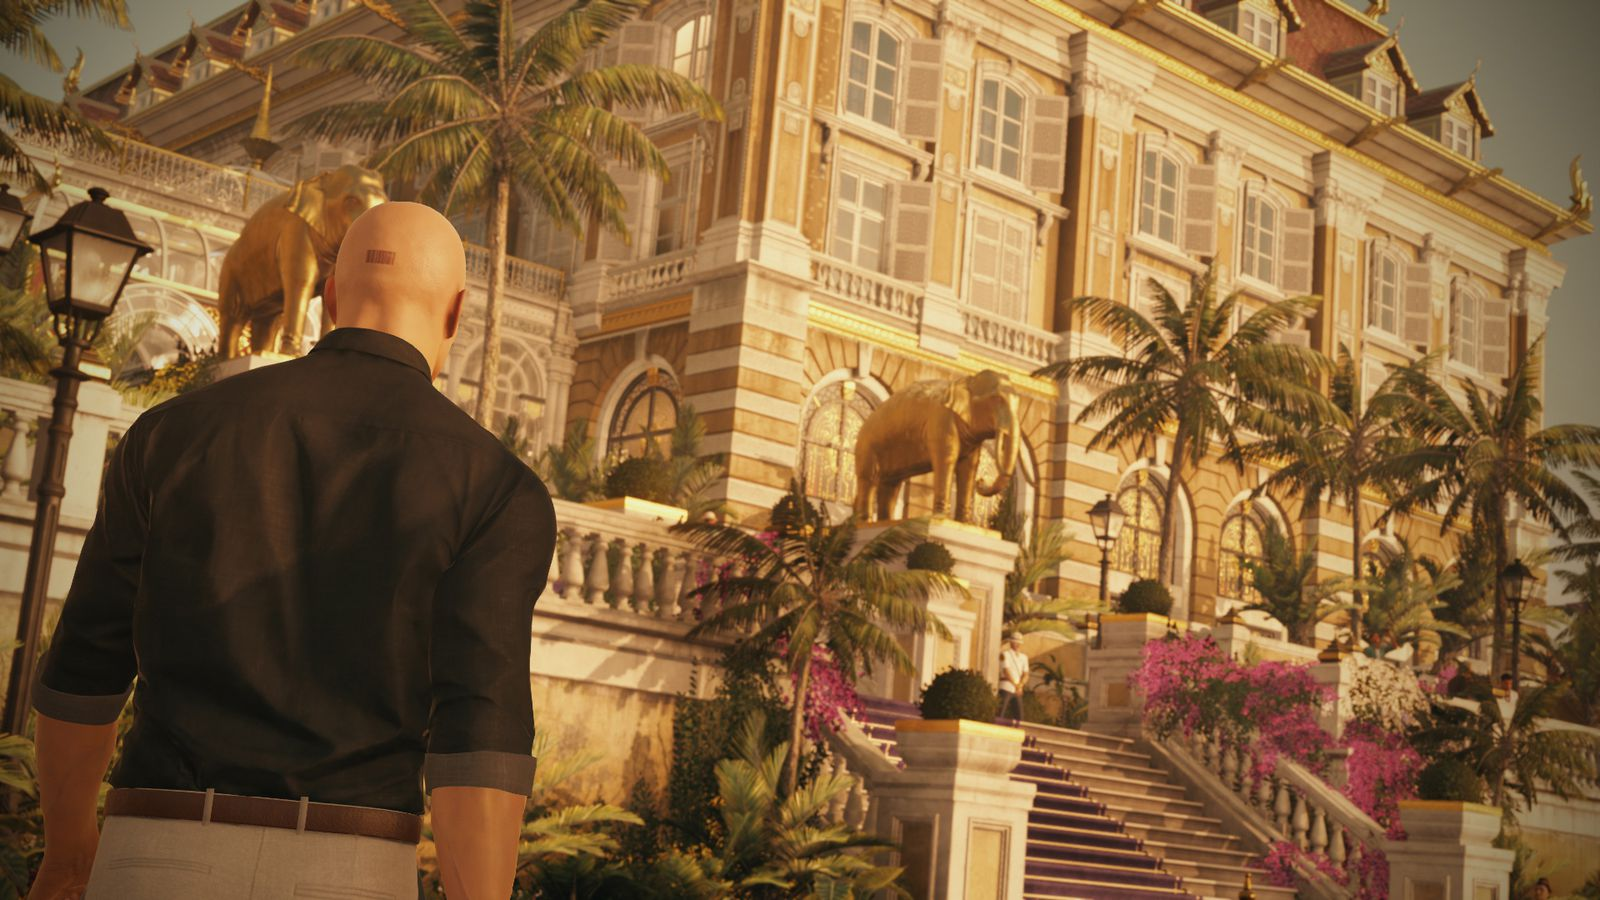 Globe-trot to Bangkok later this month in Hitman's new episode   Polygon